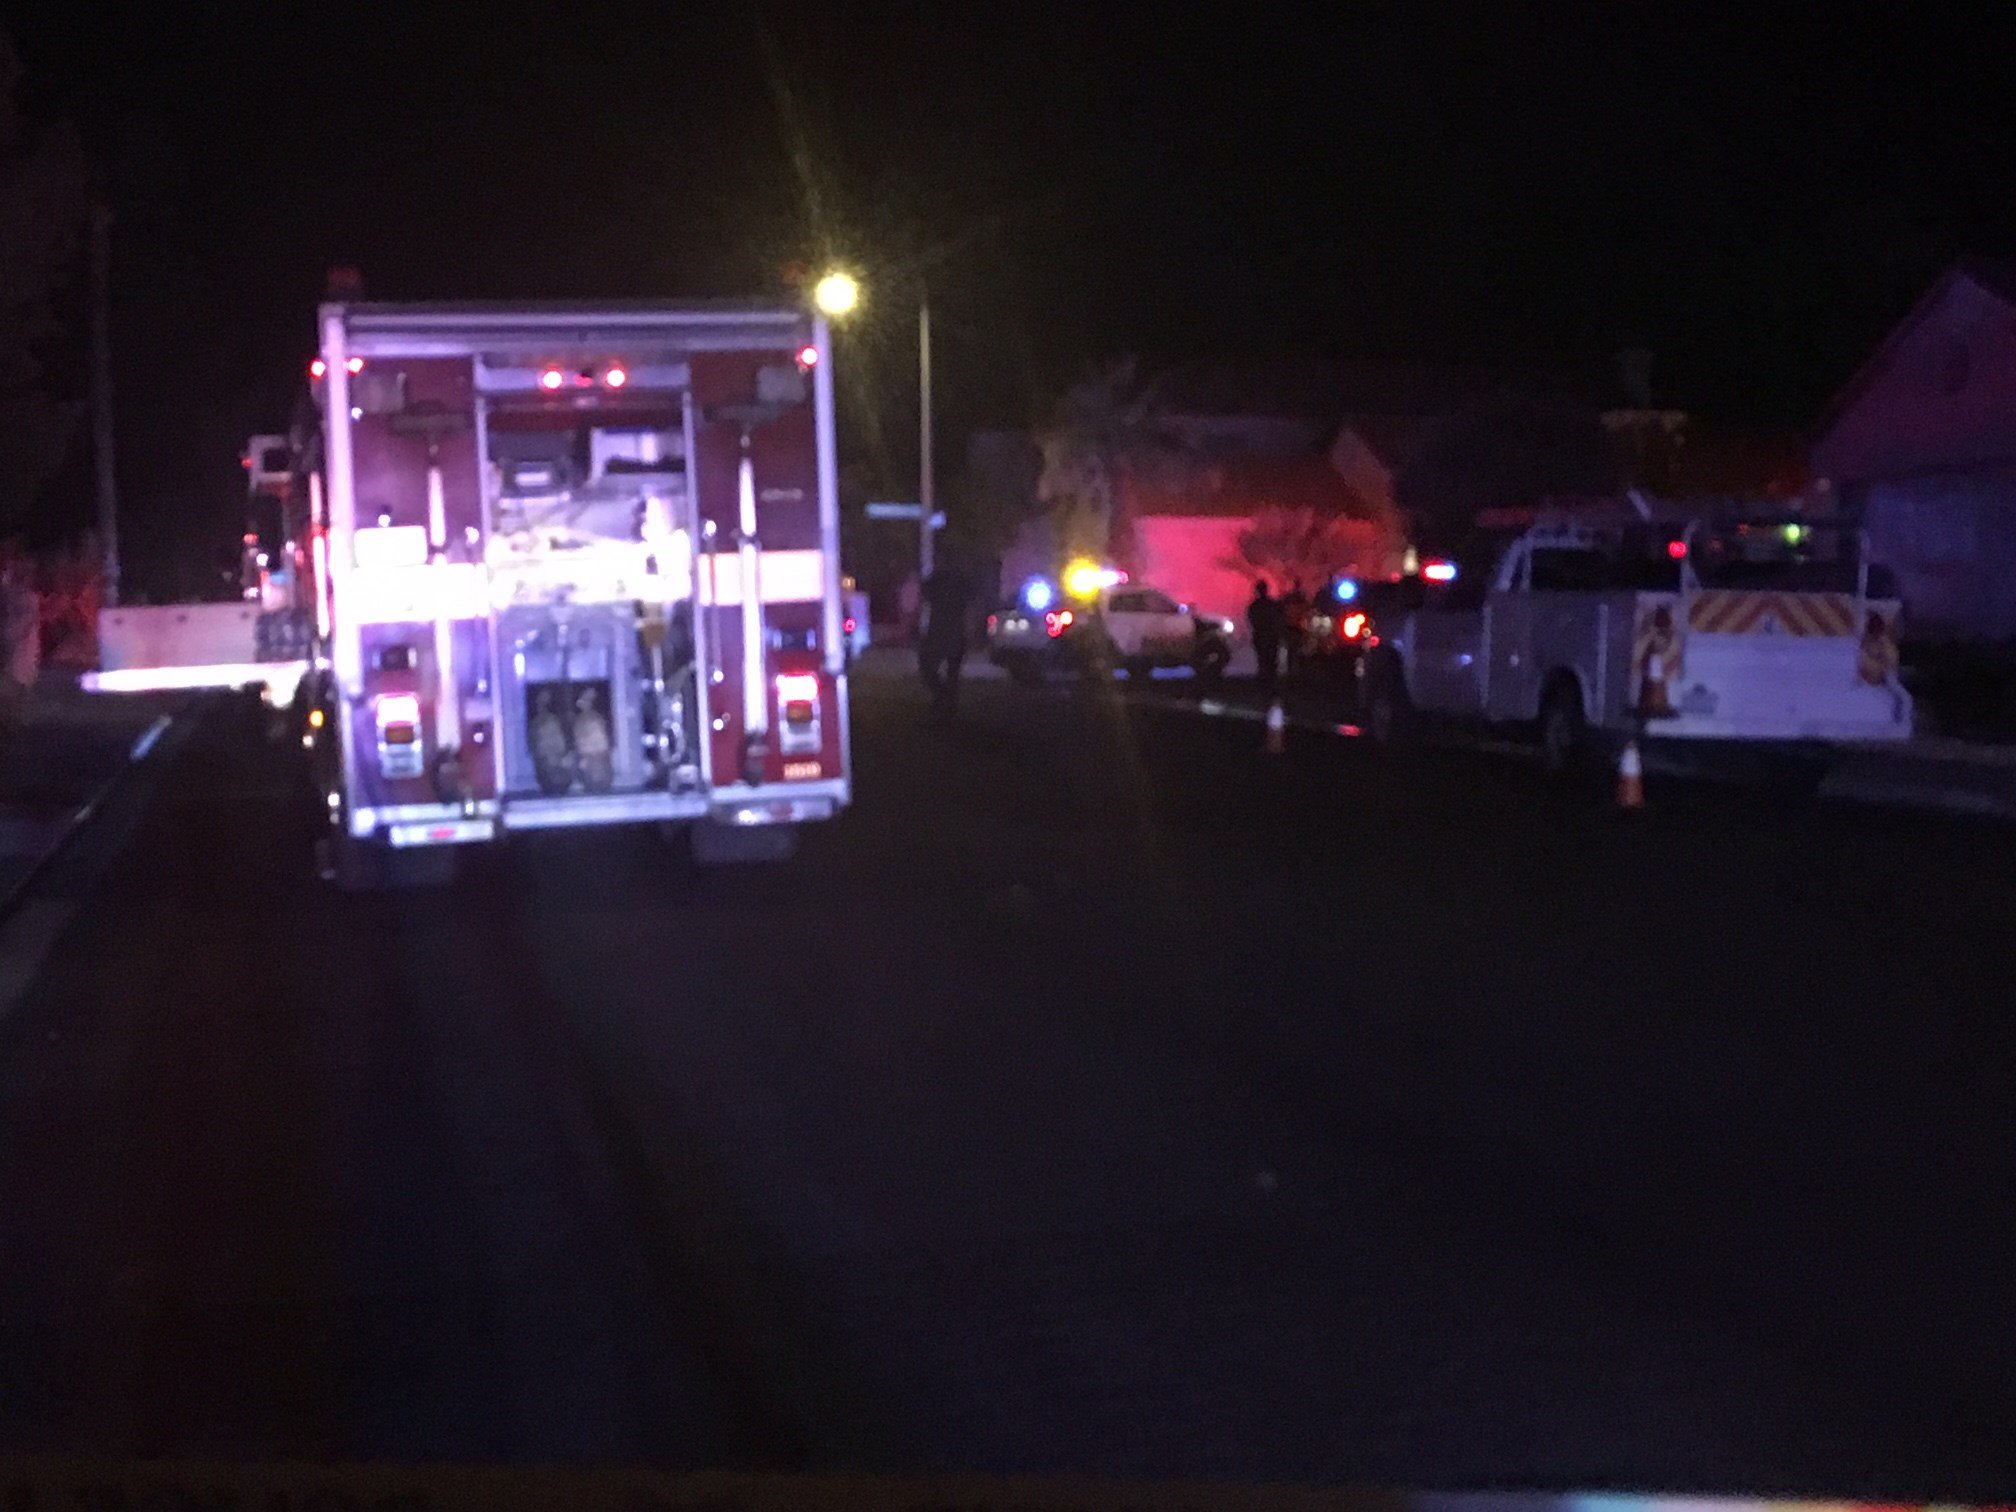 A four-year-old girl was injured in a house fire near Desert Inn Road and Hualapai Way. (Robbie Hunt/FOX5)